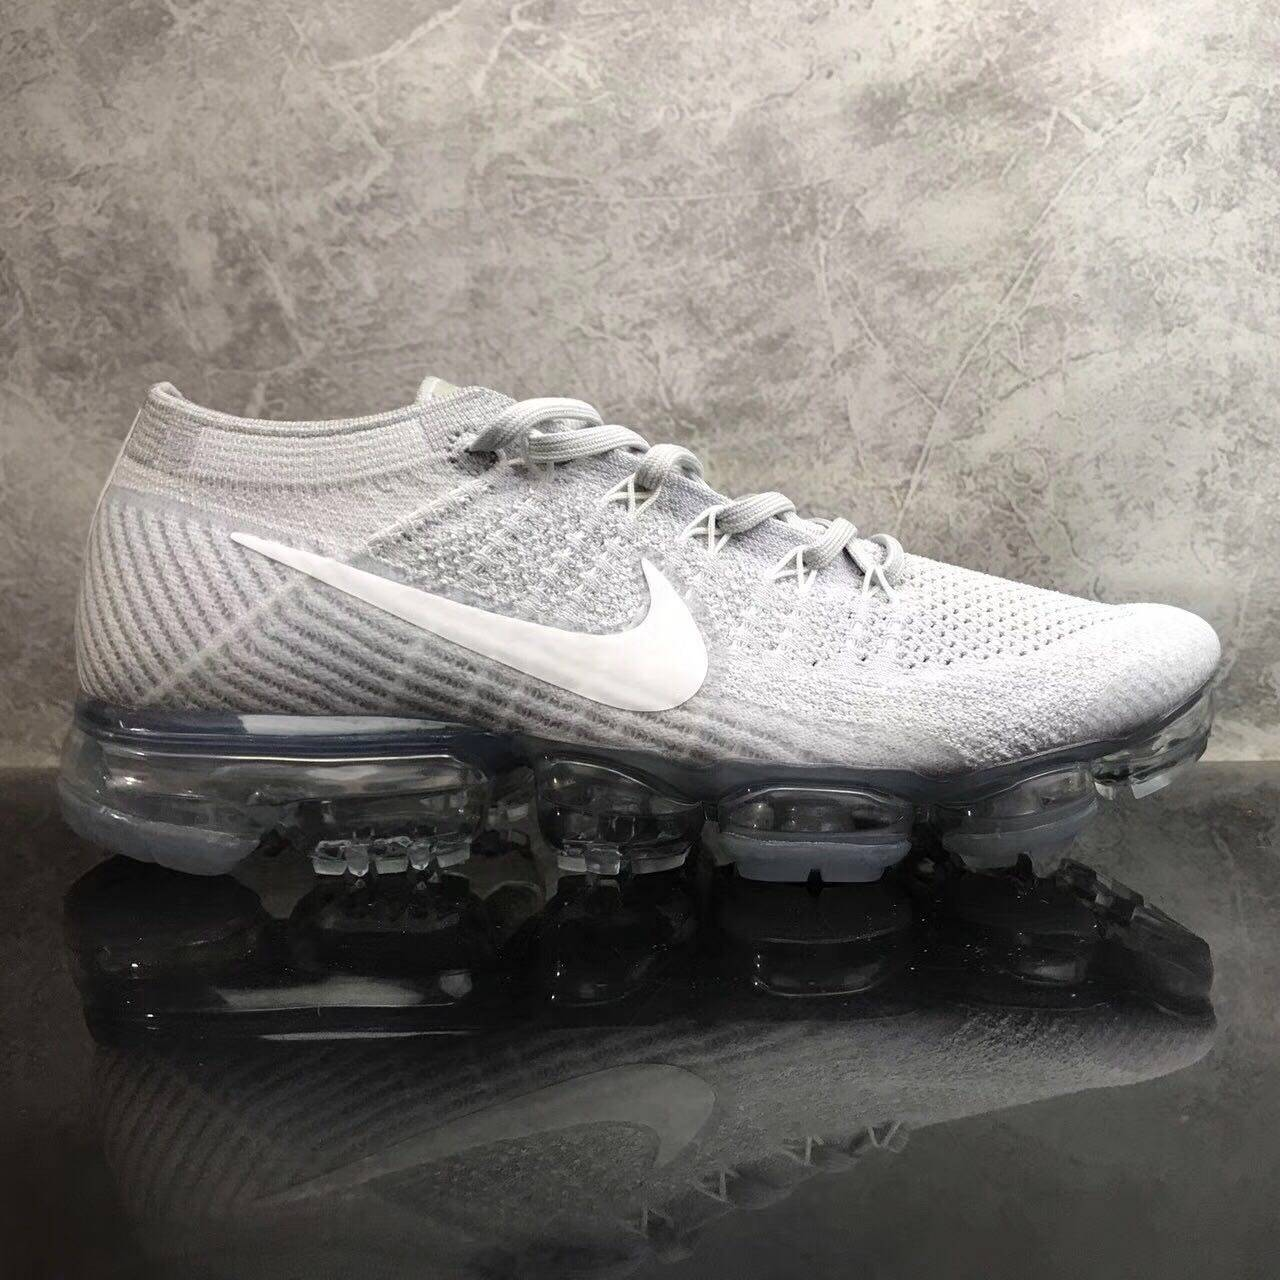 92d95cffe NIKE AIR VAPORMAX FLYKNIT PURE PLATINUM WOLF GREY 849558-004 FROM NIKE  FACTORY DIRECTLY LIMITED PAIRS